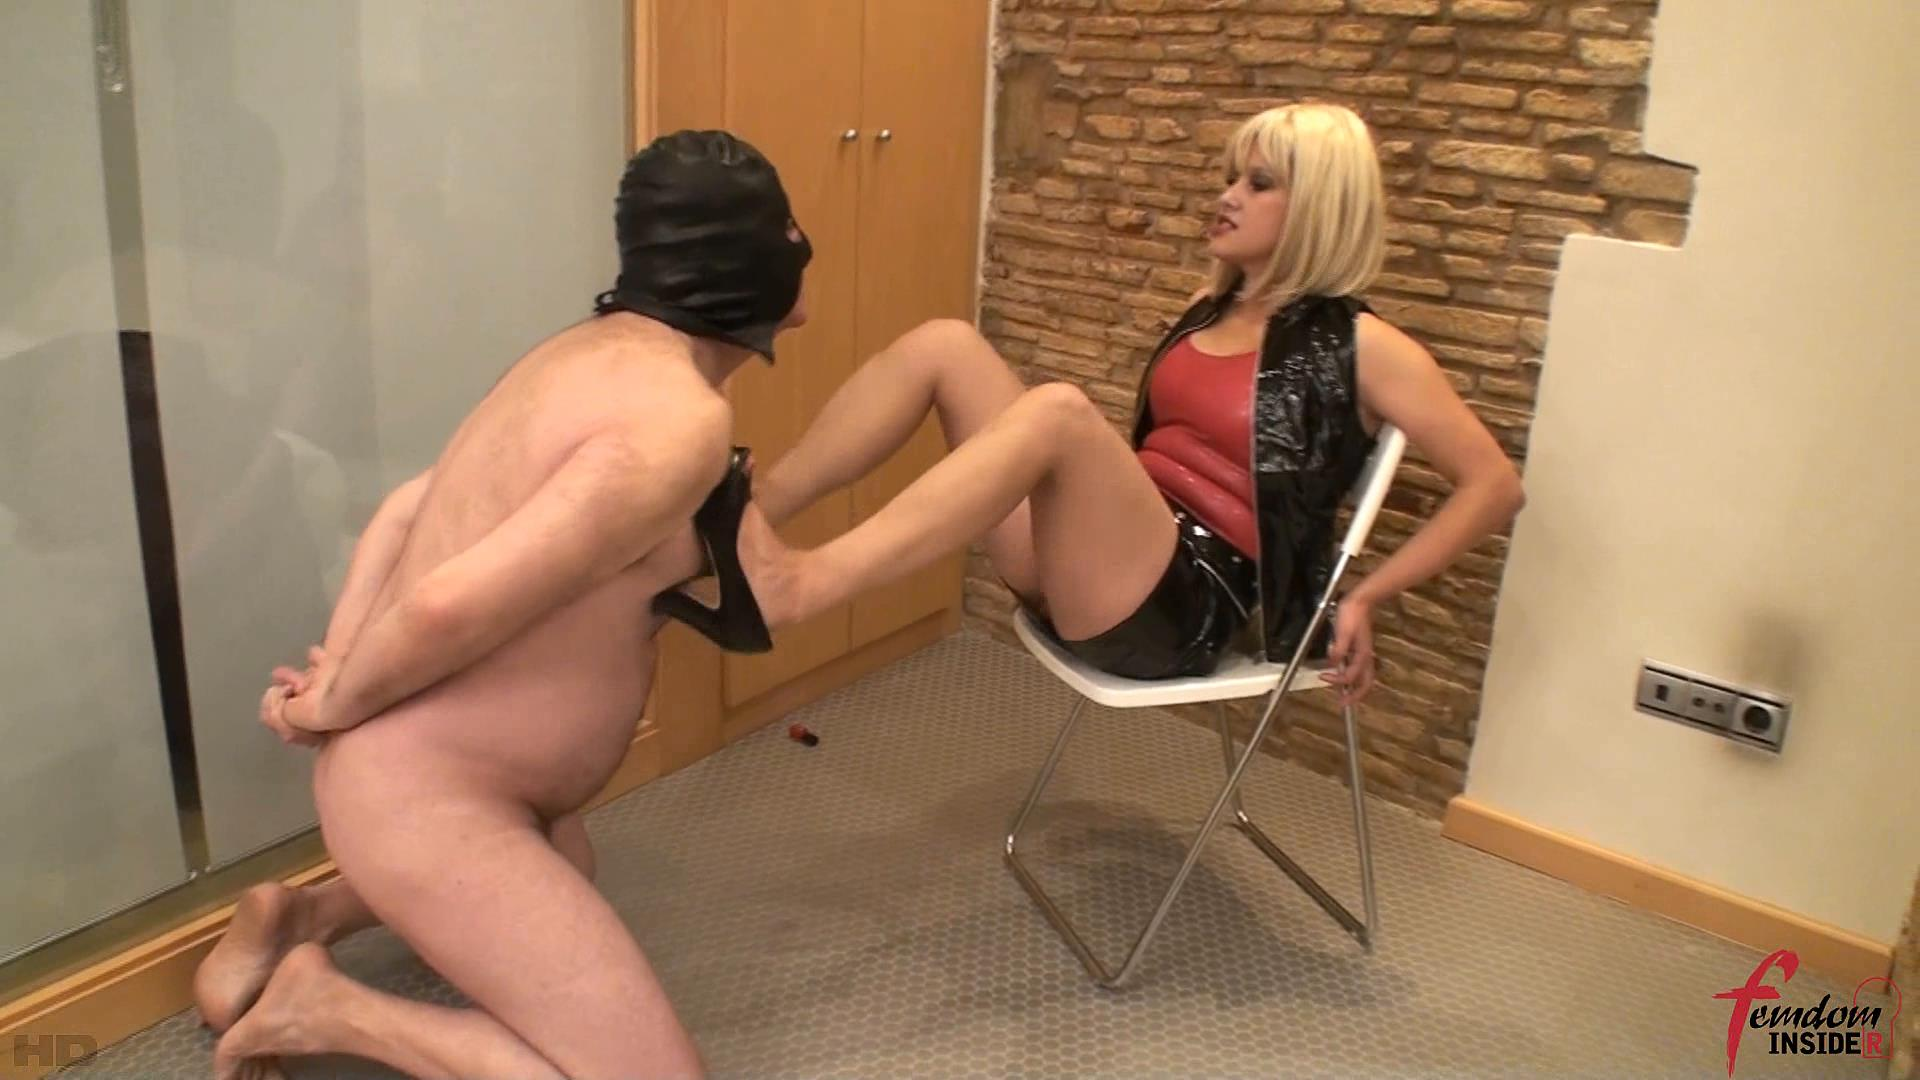 Mistress Karen In Scene: Shoes Review - FEMDOMINSIDER - FULL HD/1080p/WMV